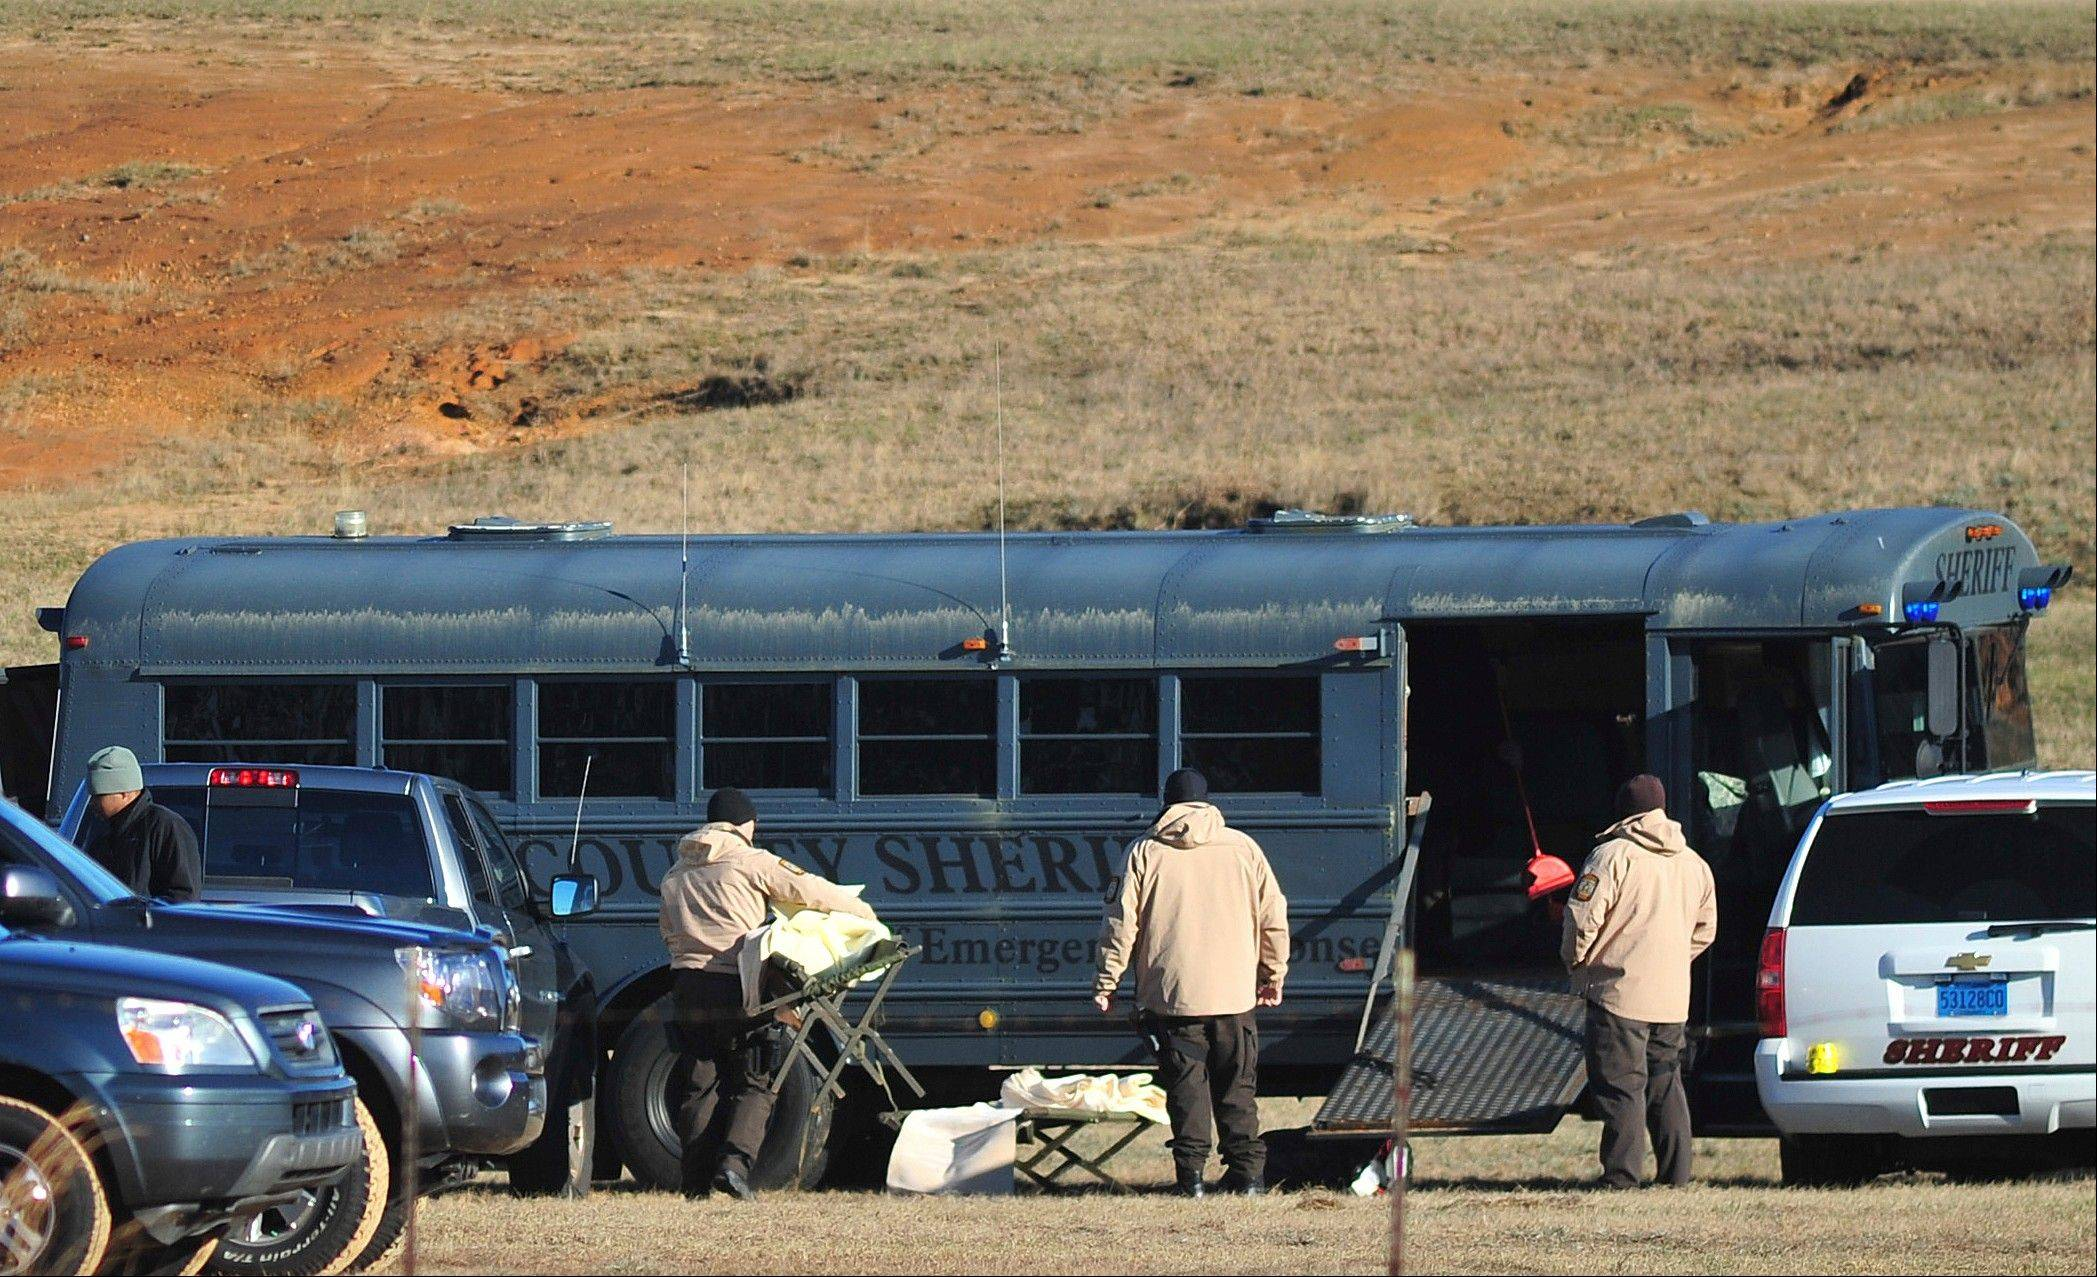 Law enforcement personnel load provisions into a bus during the third day of a hostage crisis involving a 5-year-old boy, in Midland City, Ala, Thursday, Jan 31, 2013. A standoff in rural Alabama went into a second full day Thursday as police surrounded an underground bunker where a retired truck driver was holding a 5-year-old hostage he grabbed off a school bus after shooting the driver dead.